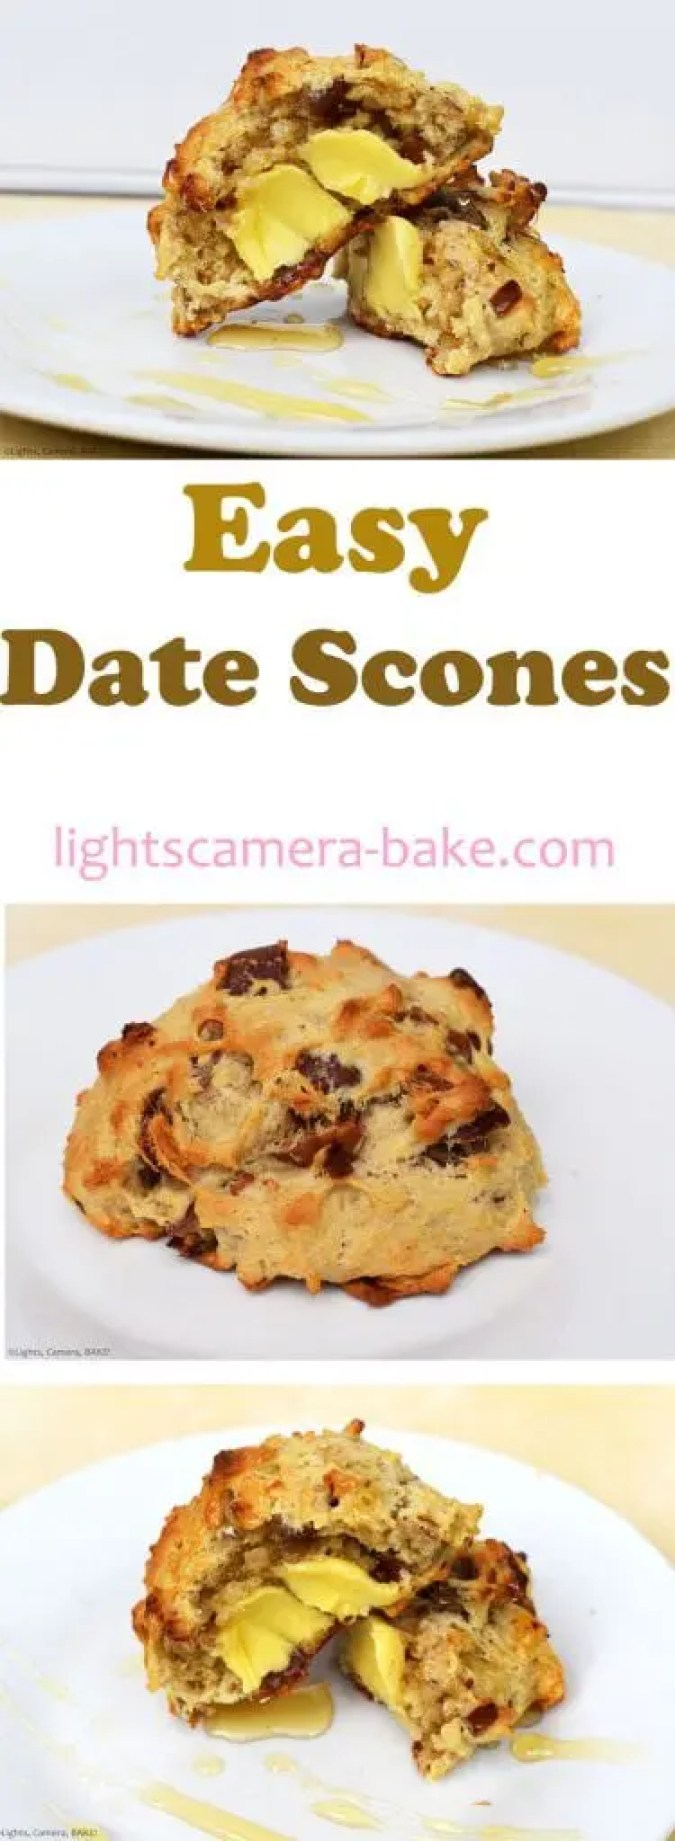 Easy Date Scones are light and fluffy and packed full of dates. Top with butter and runny honey and you have yourself the best brunch you could ever wish for.